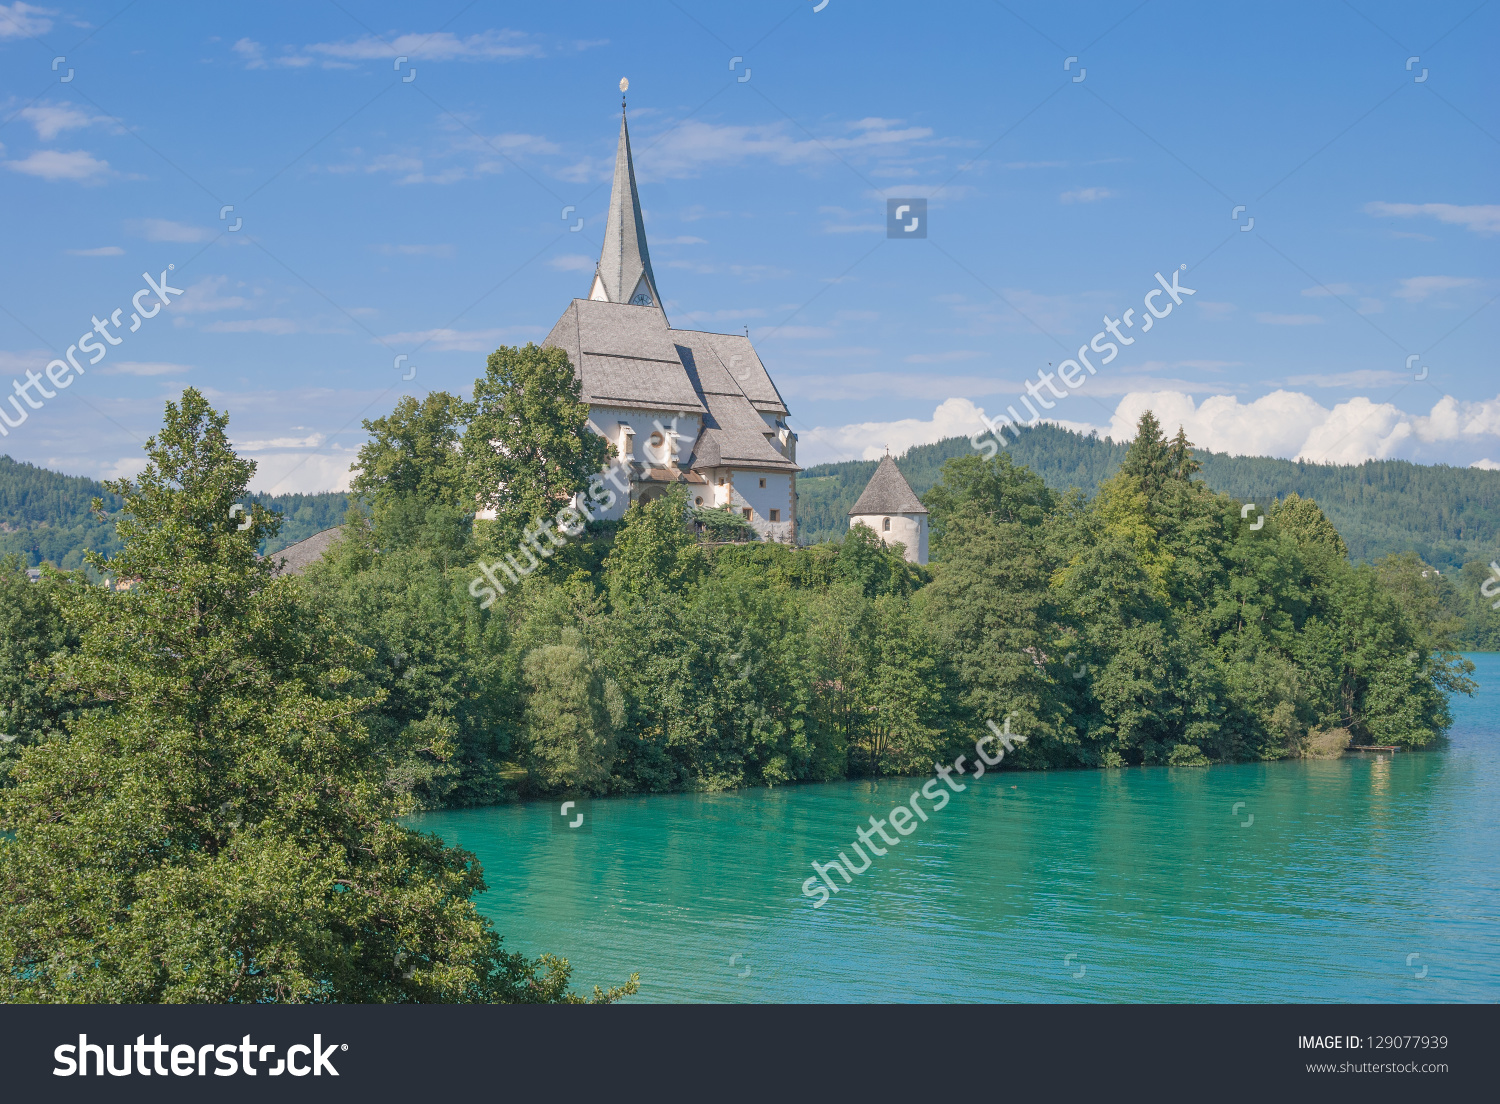 Church Of Maria Woerth At Lake Woerthersee In Carinthia,Austria.